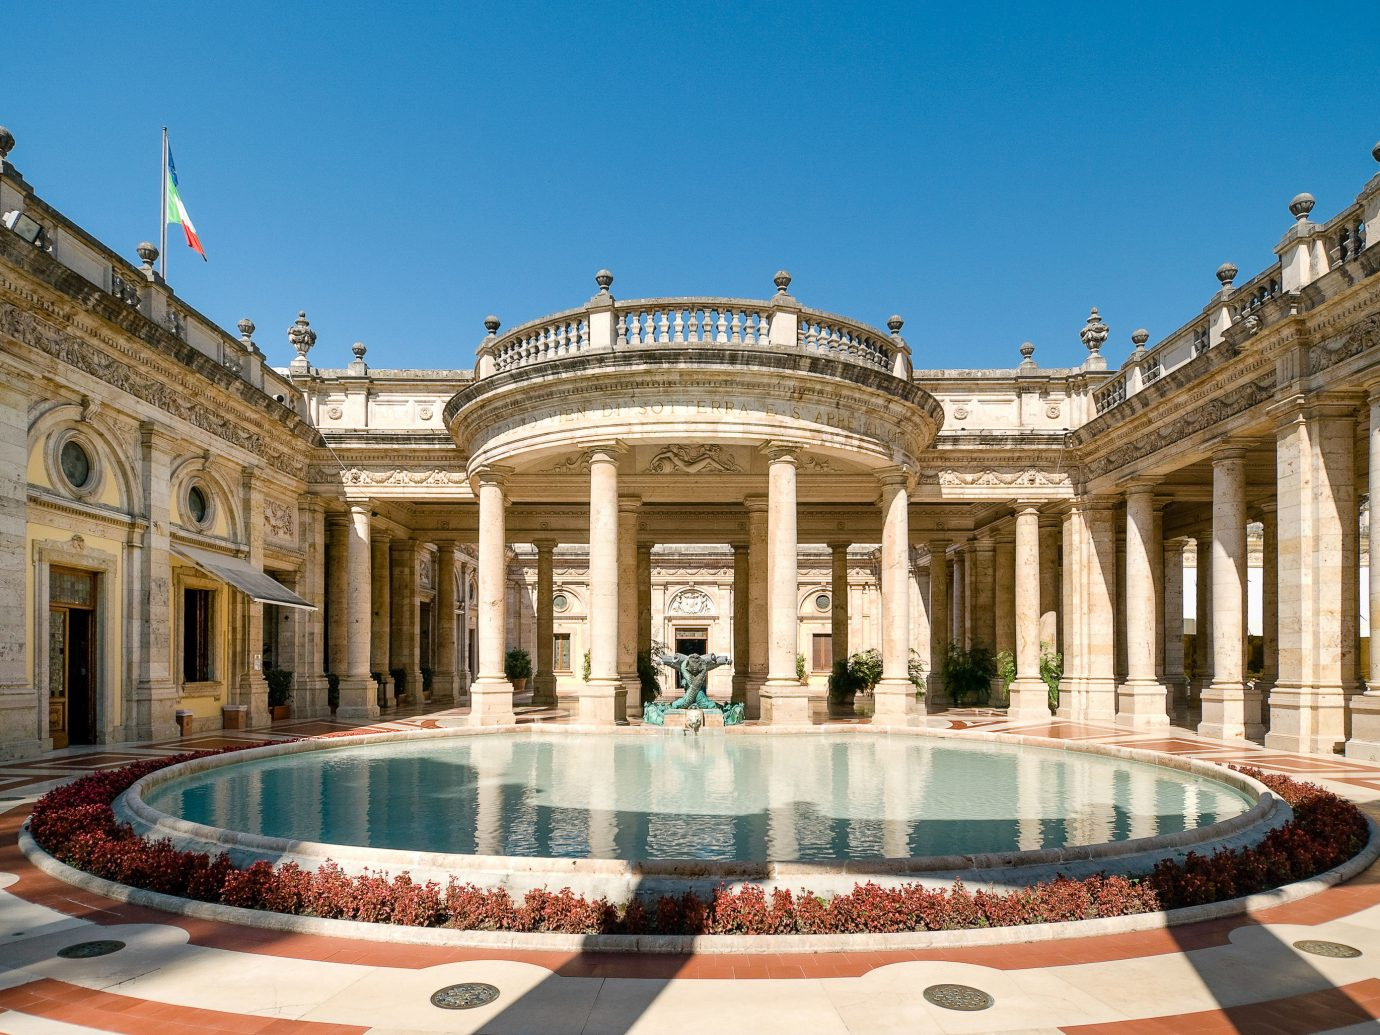 Health + Wellness Luxury Travel Trip Ideas building outdoor tourist attraction estate thermae tourism mansion ancient rome real estate palace plaza leisure hotel sky colonnade